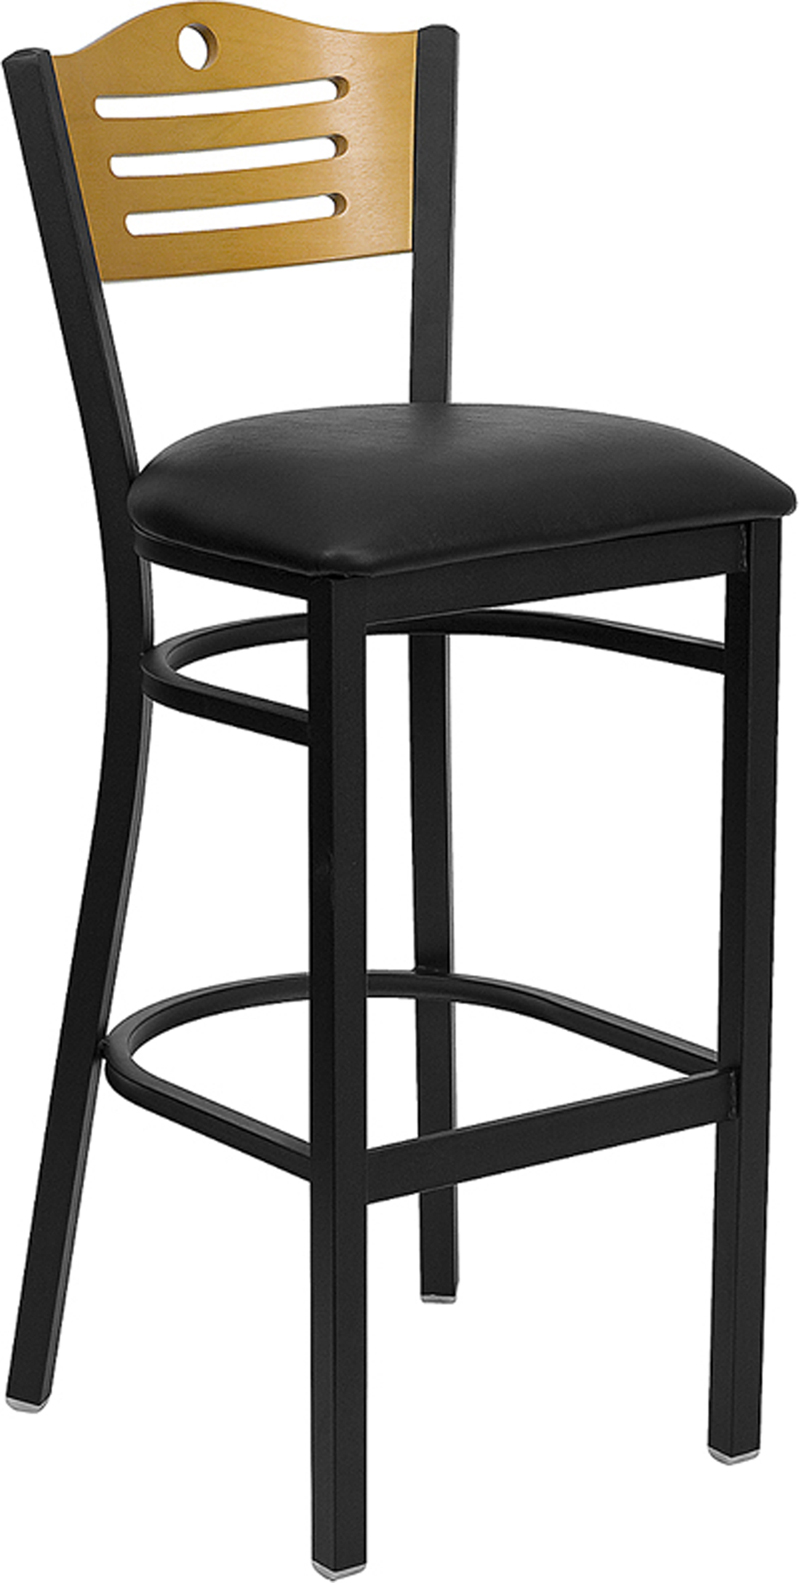 ERGONOMIC HOME TOUGH ENOUGH Series Black Slat Back Metal Restaurant Barstool - Natural Wood Back, Black Vinyl Seat <b><font color=green>50% Off Read More Below...</font></b>